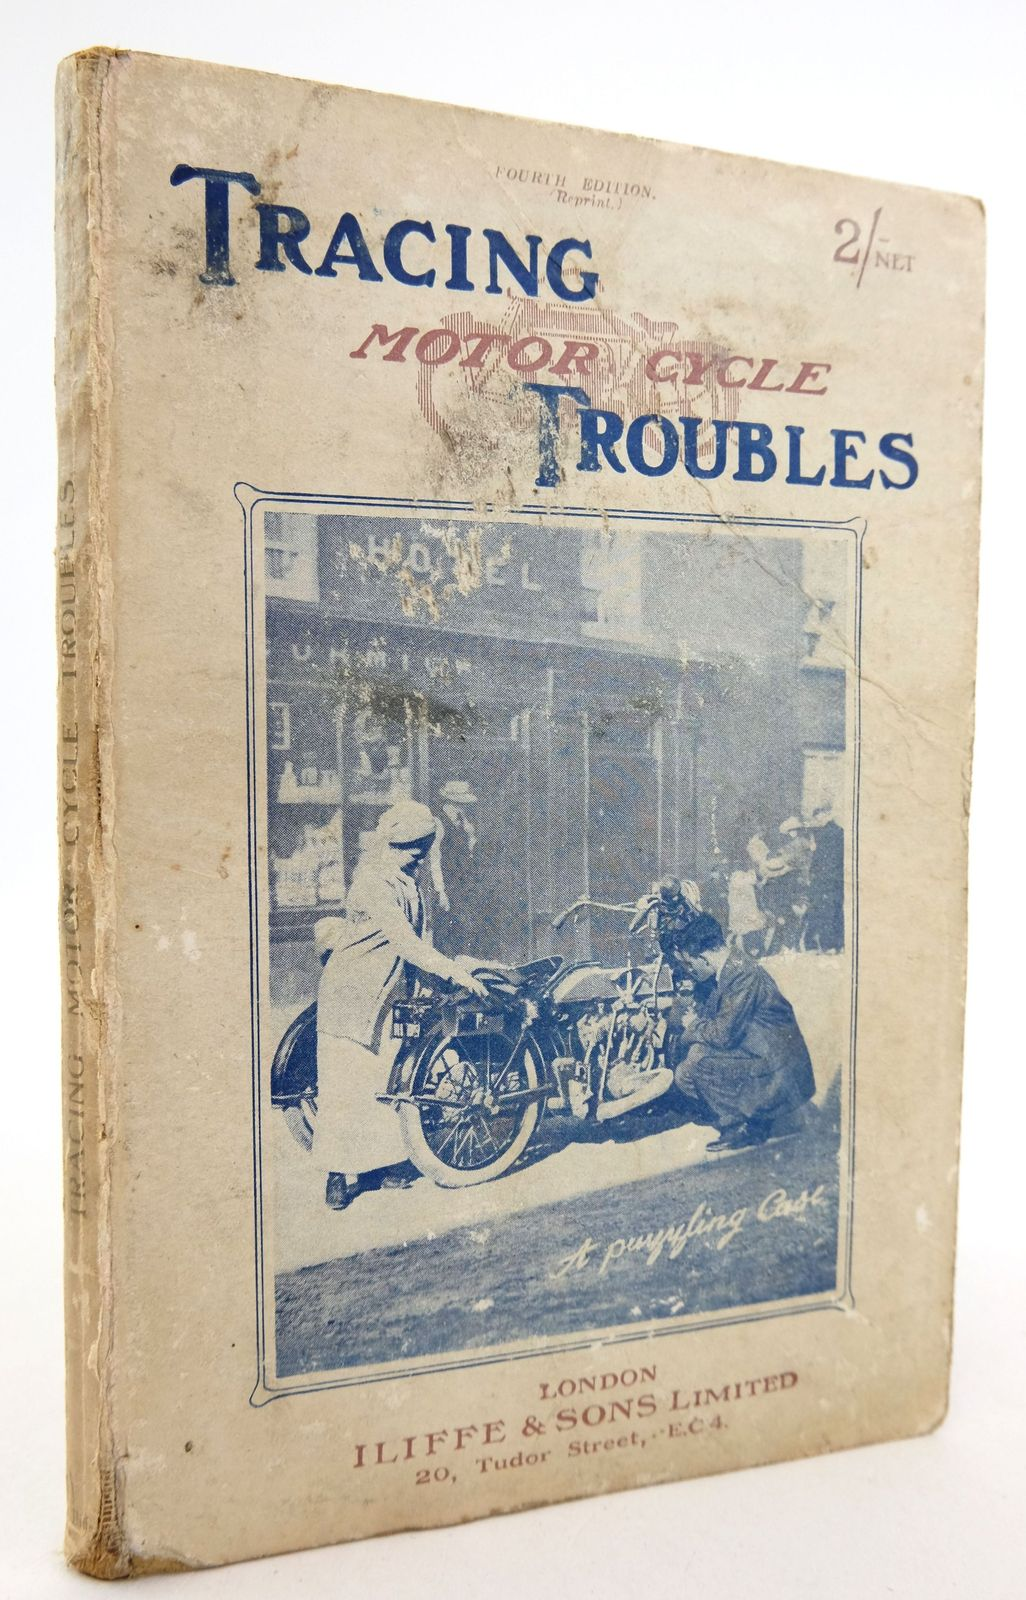 Photo of TRACING MOTOR CYCLE TROUBLES written by Road Rider, published by Iliffe & Sons Limited (STOCK CODE: 1819440)  for sale by Stella & Rose's Books